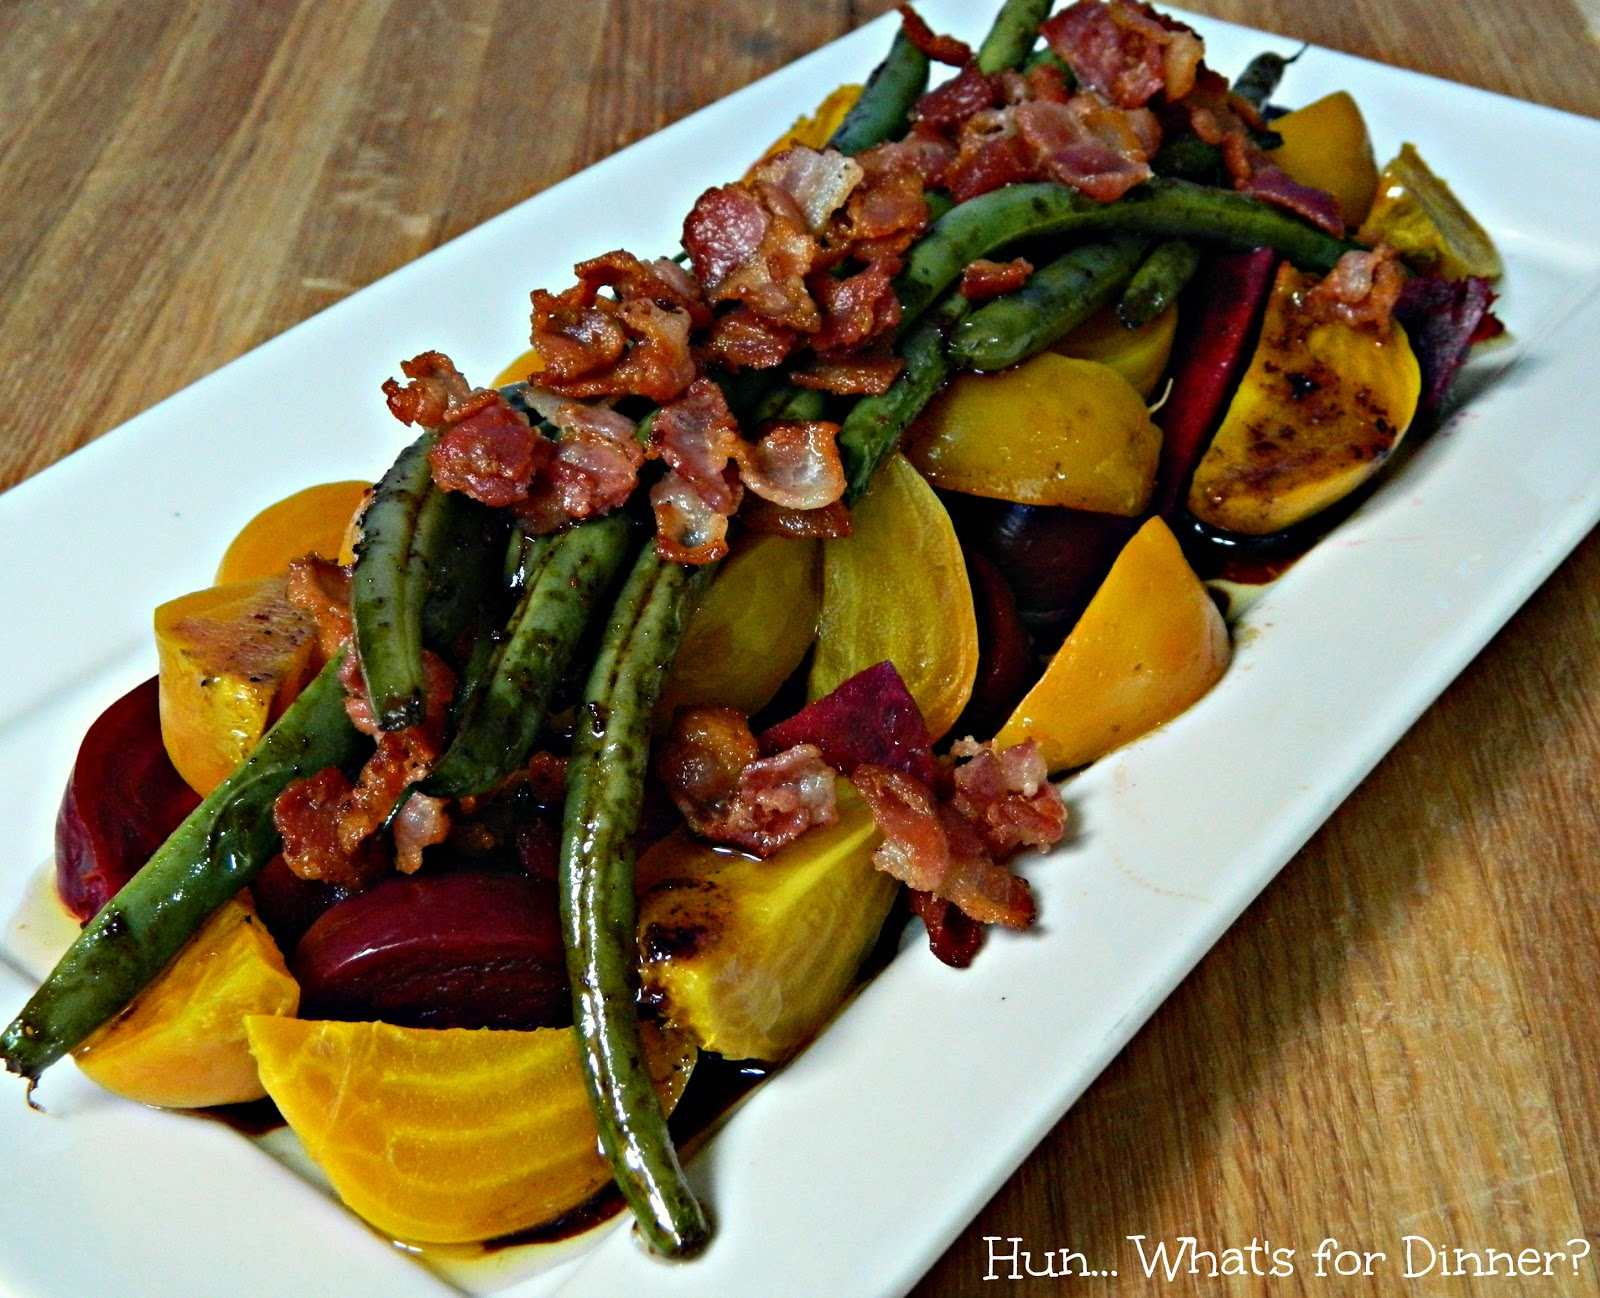 Tender beets are topped with warm green beans, bacon and a delightful warm vinaigrette.